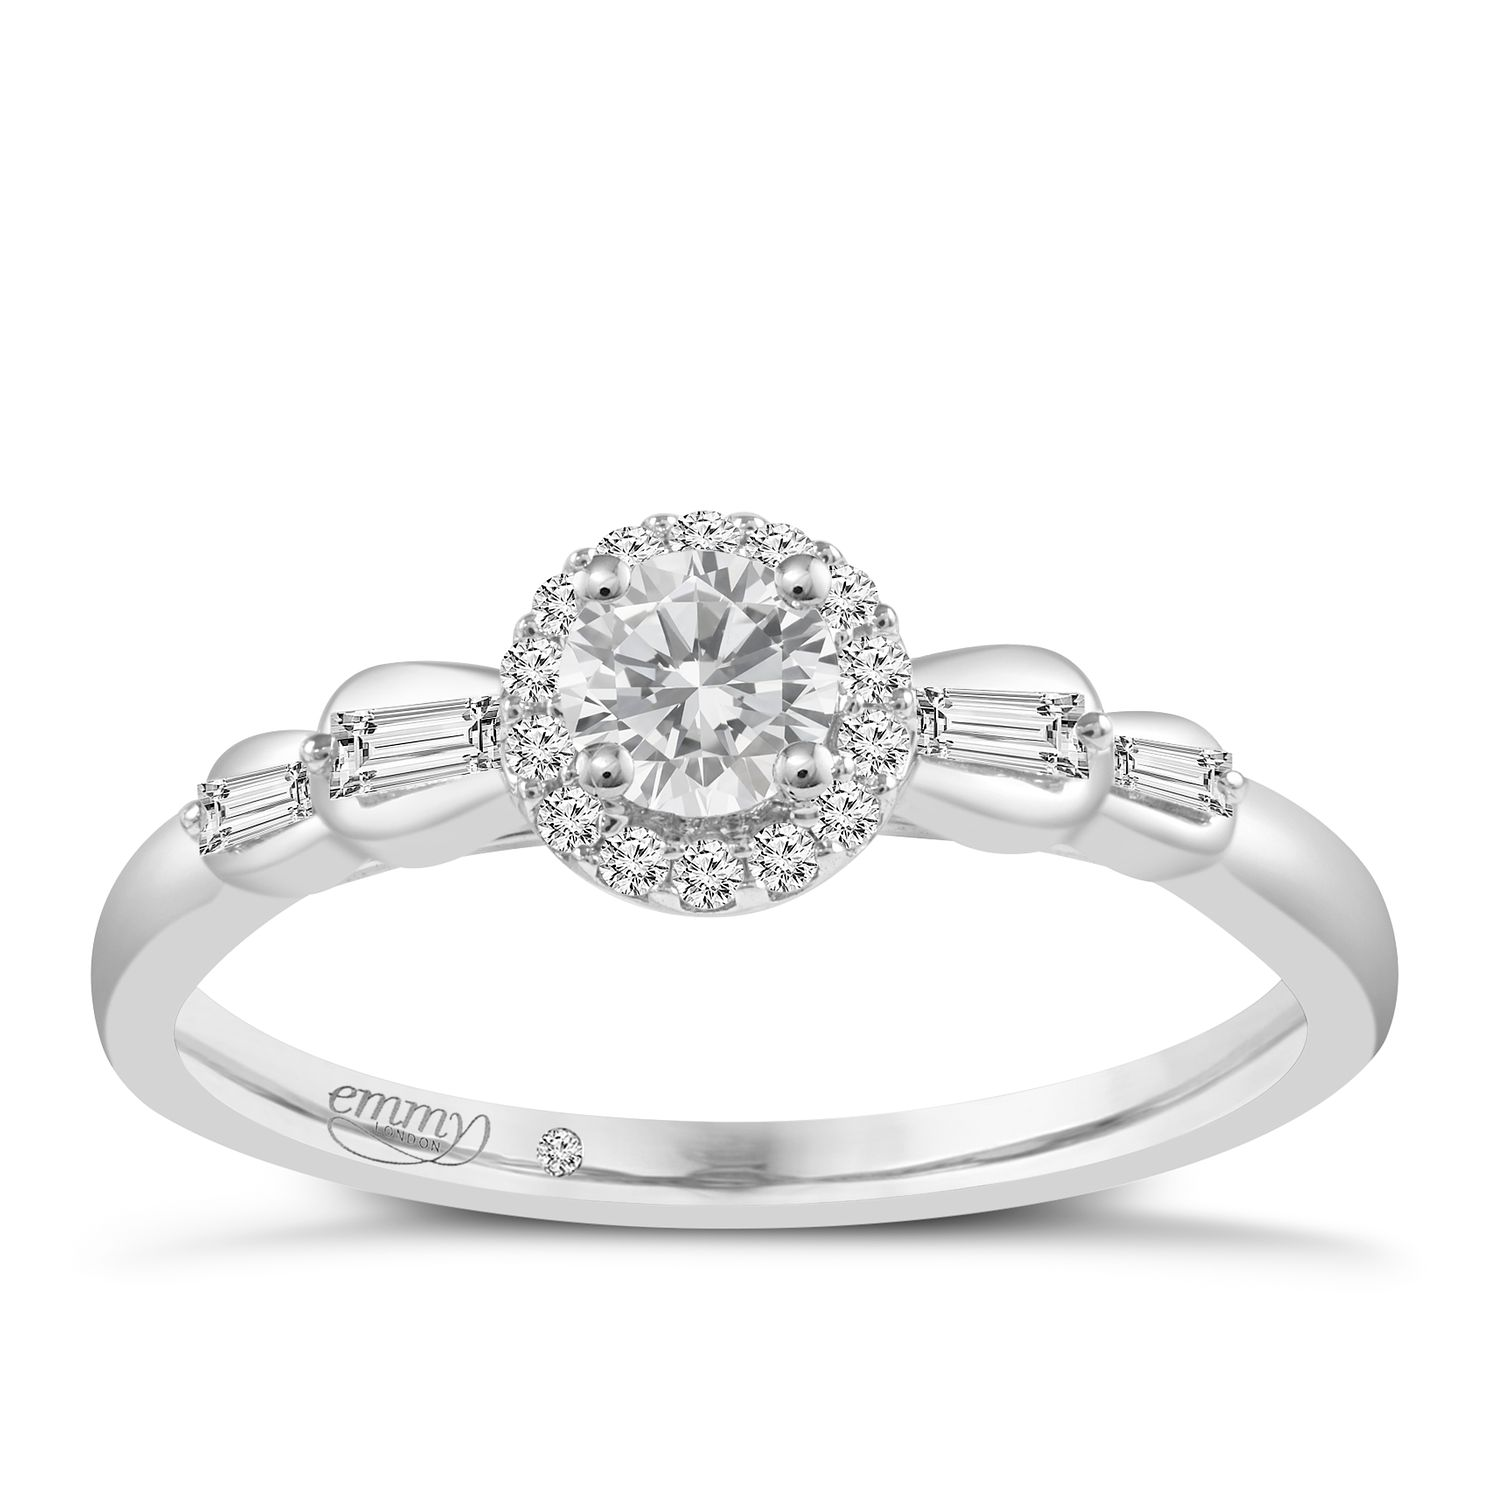 Emmy London 9ct White Gold 1/3 Carat Diamond Ring - Product number 6257062